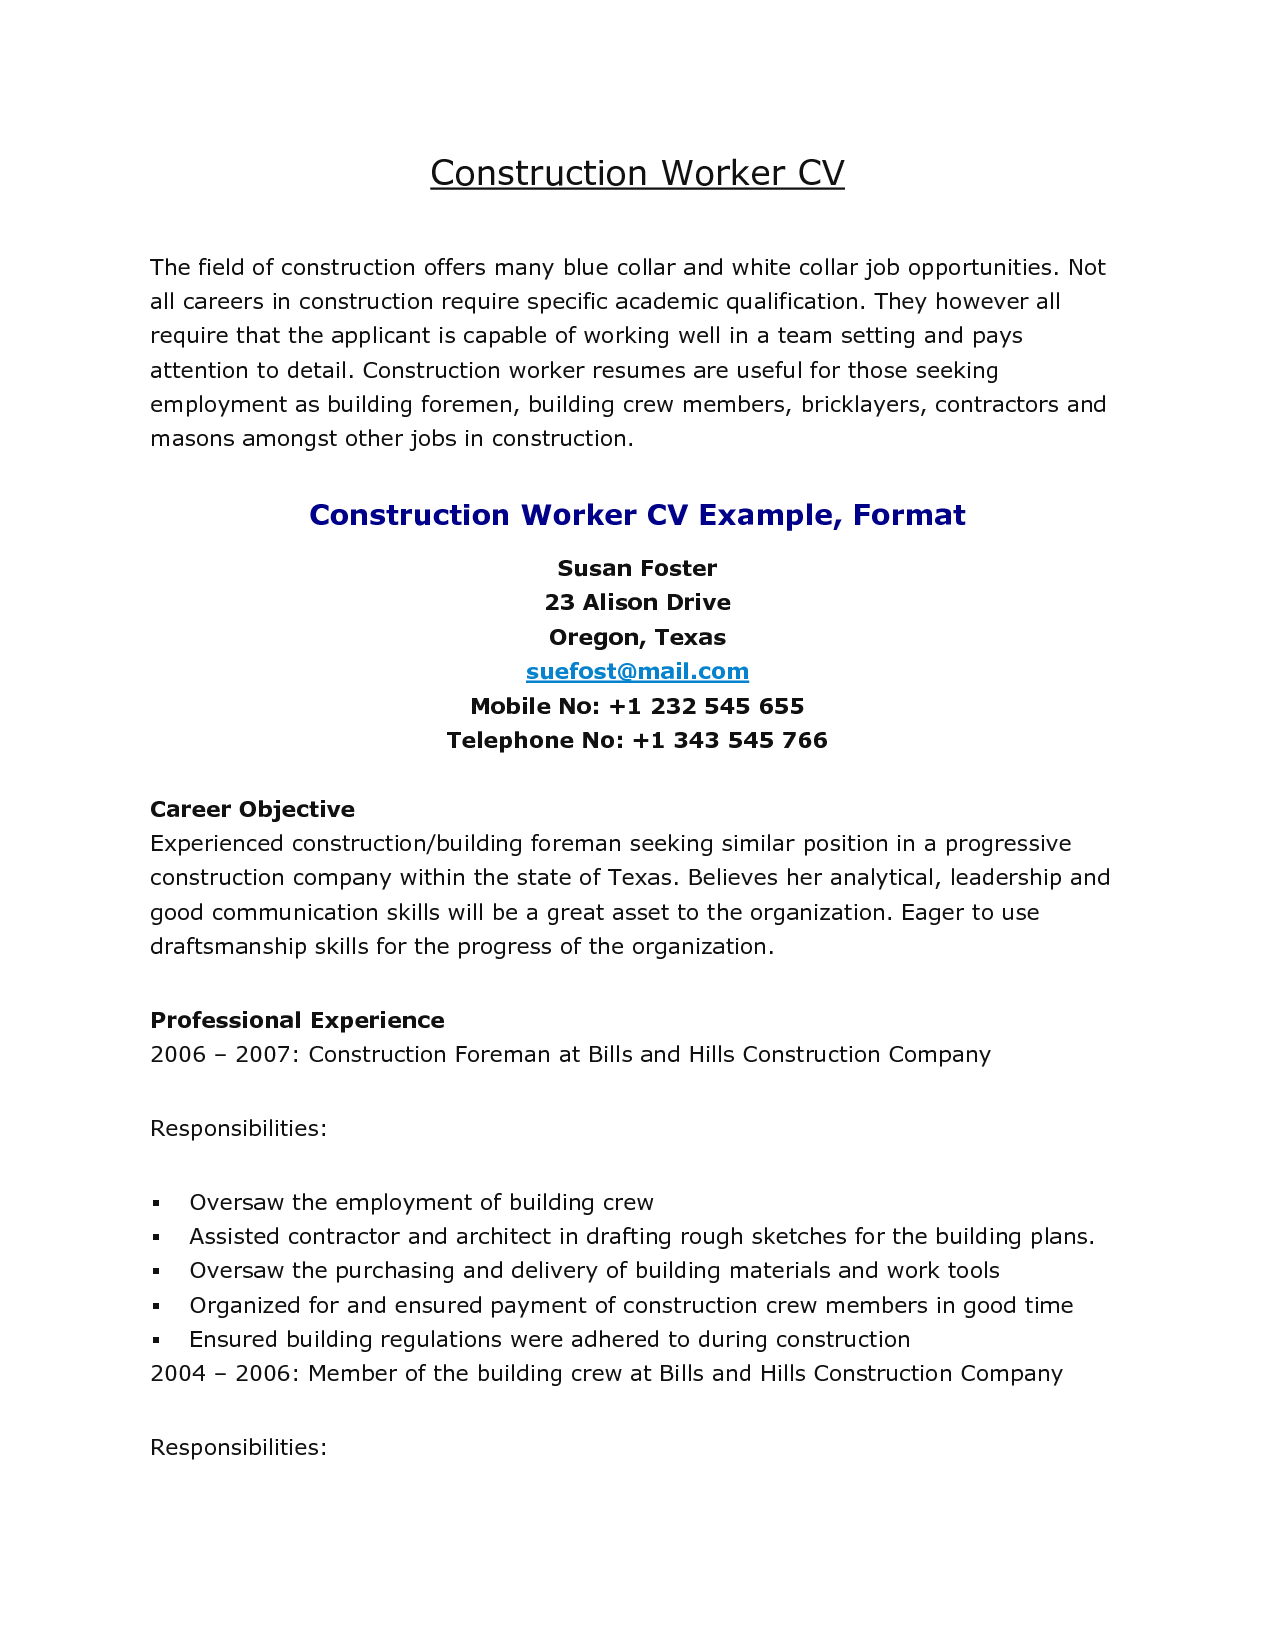 Free Samples Of Resumes Construction Workers Worker Resume Samples Free Edit With Word